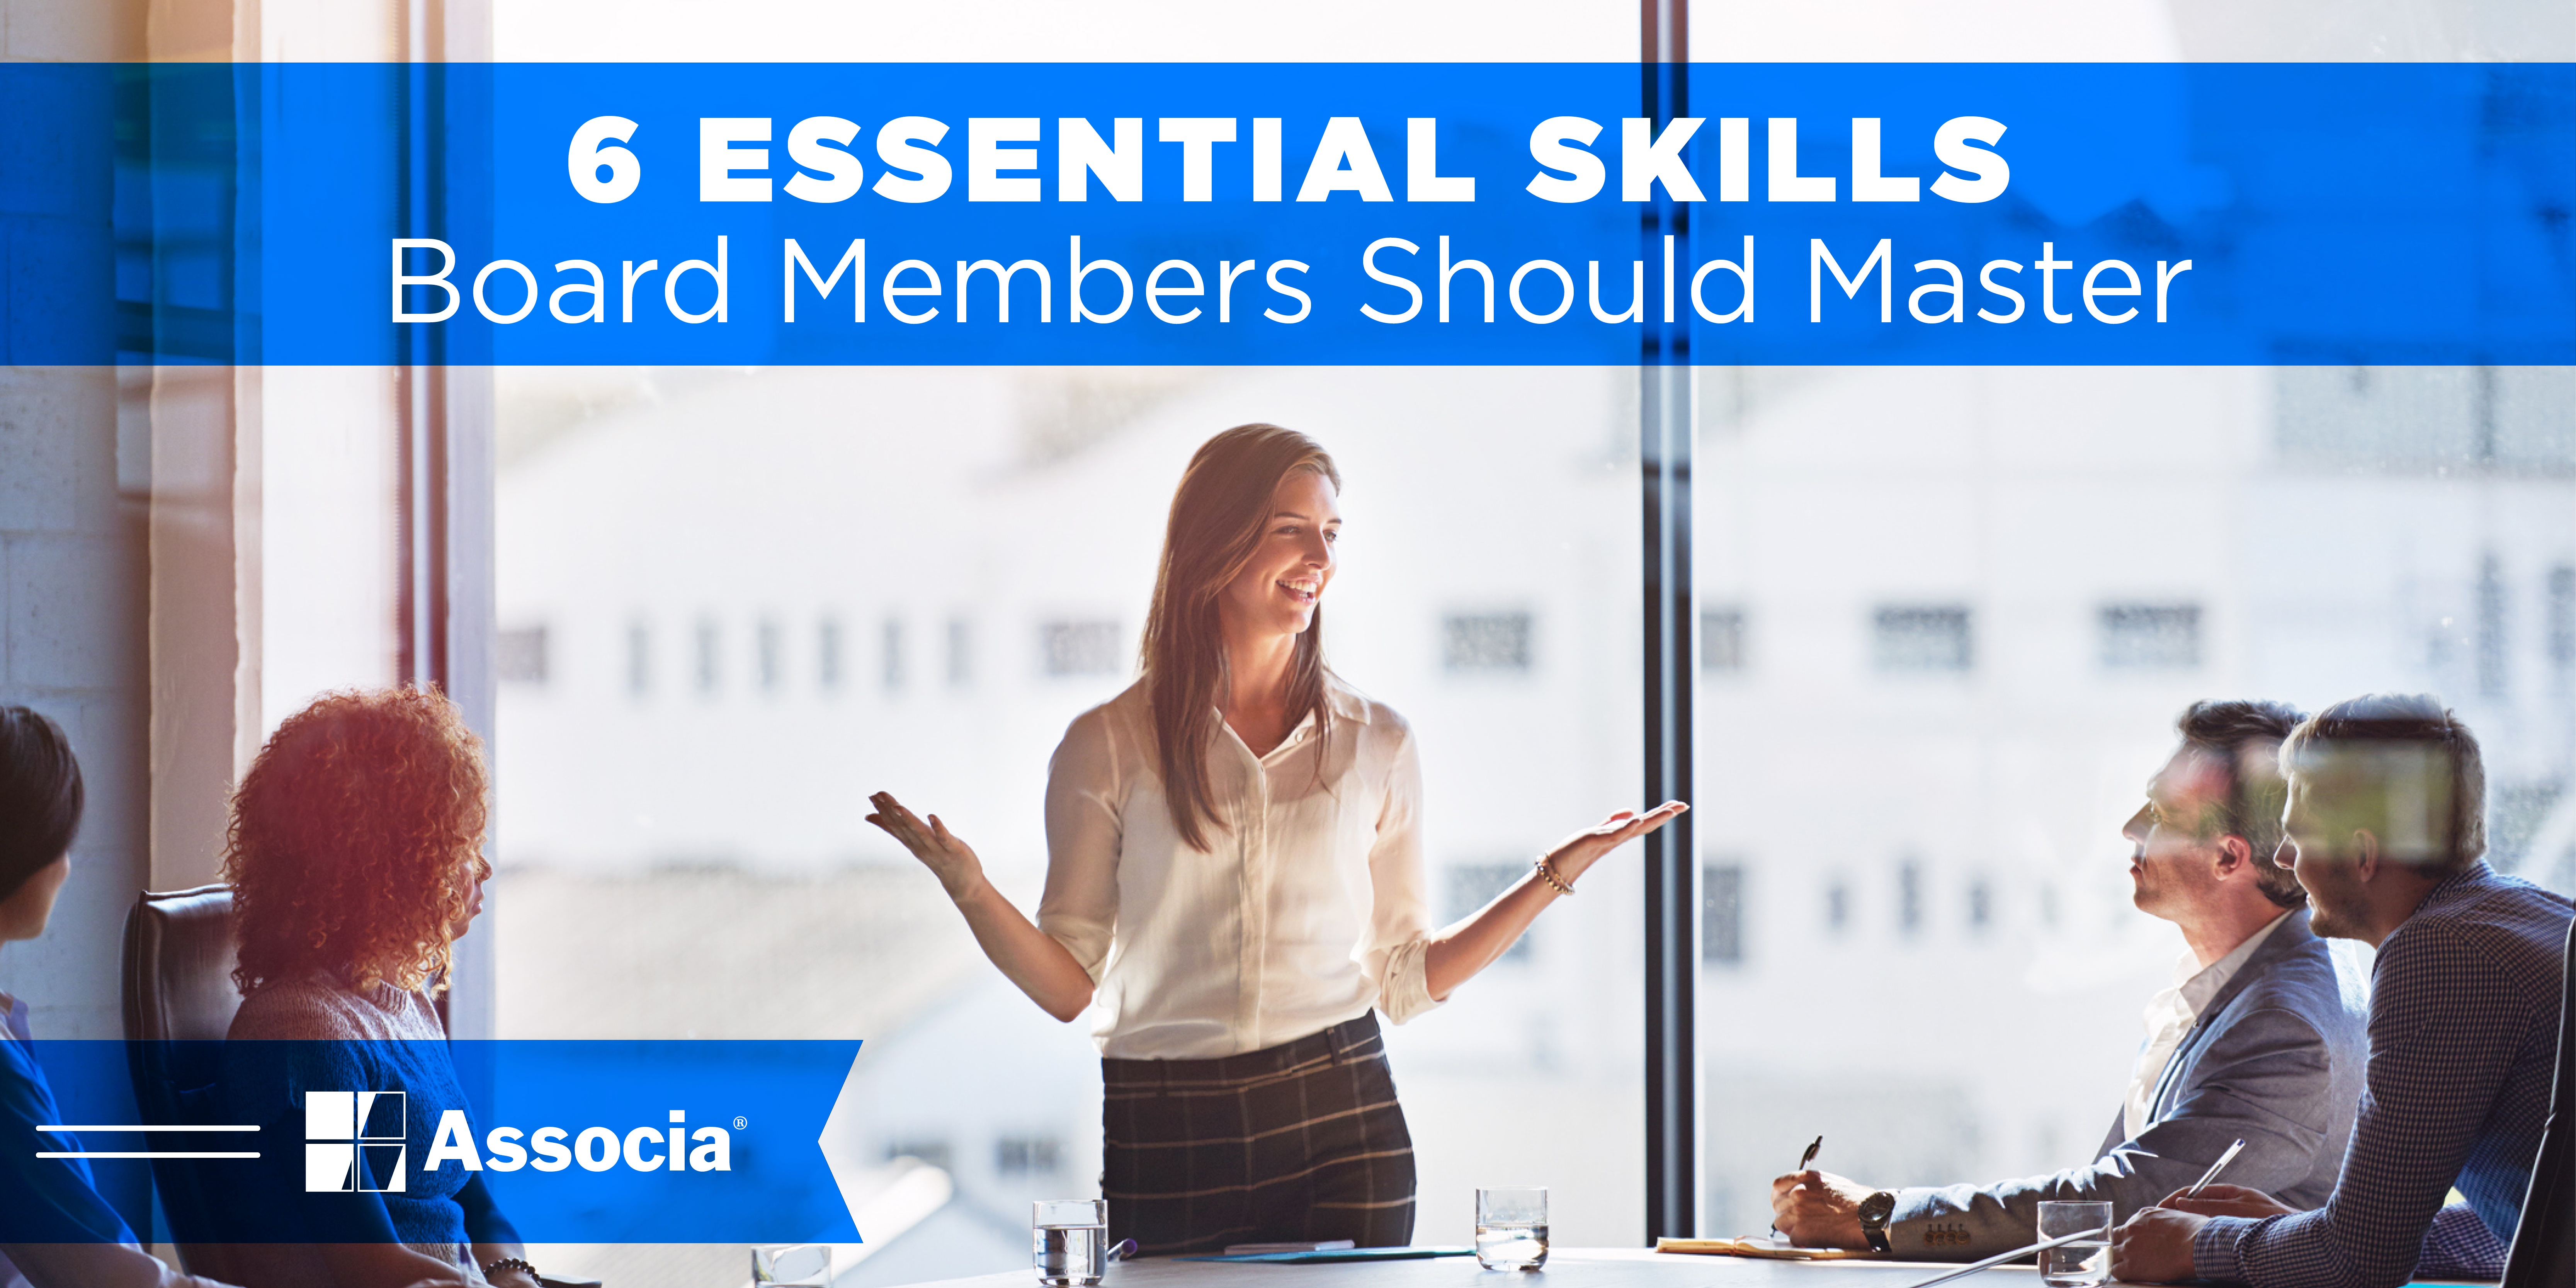 6 essential skills board members should master